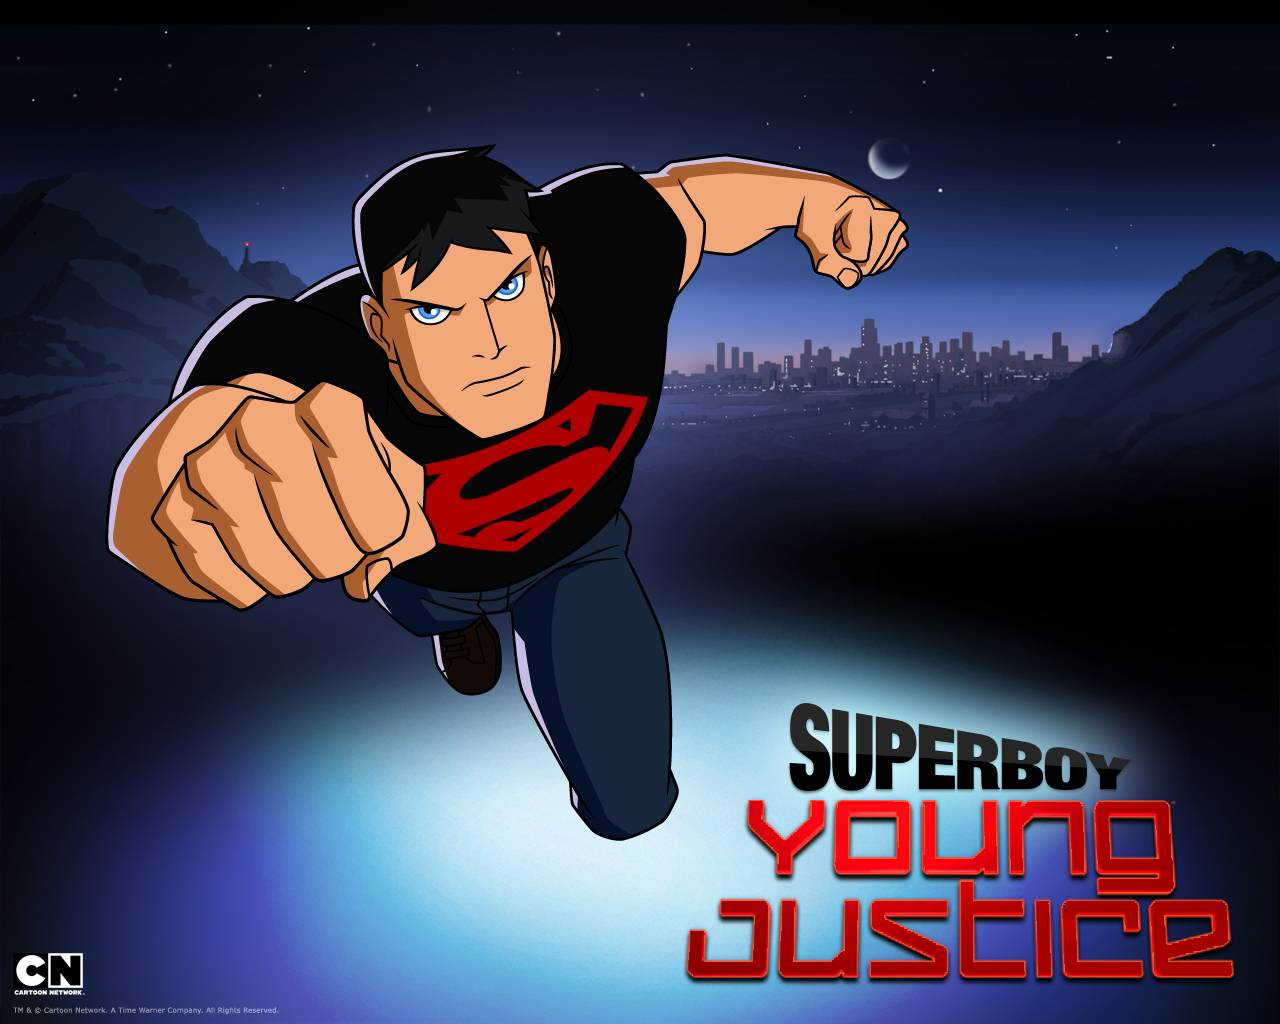 Superboy Wallpapers - Wallpaper Cave Young Justice Superboy Wallpaper